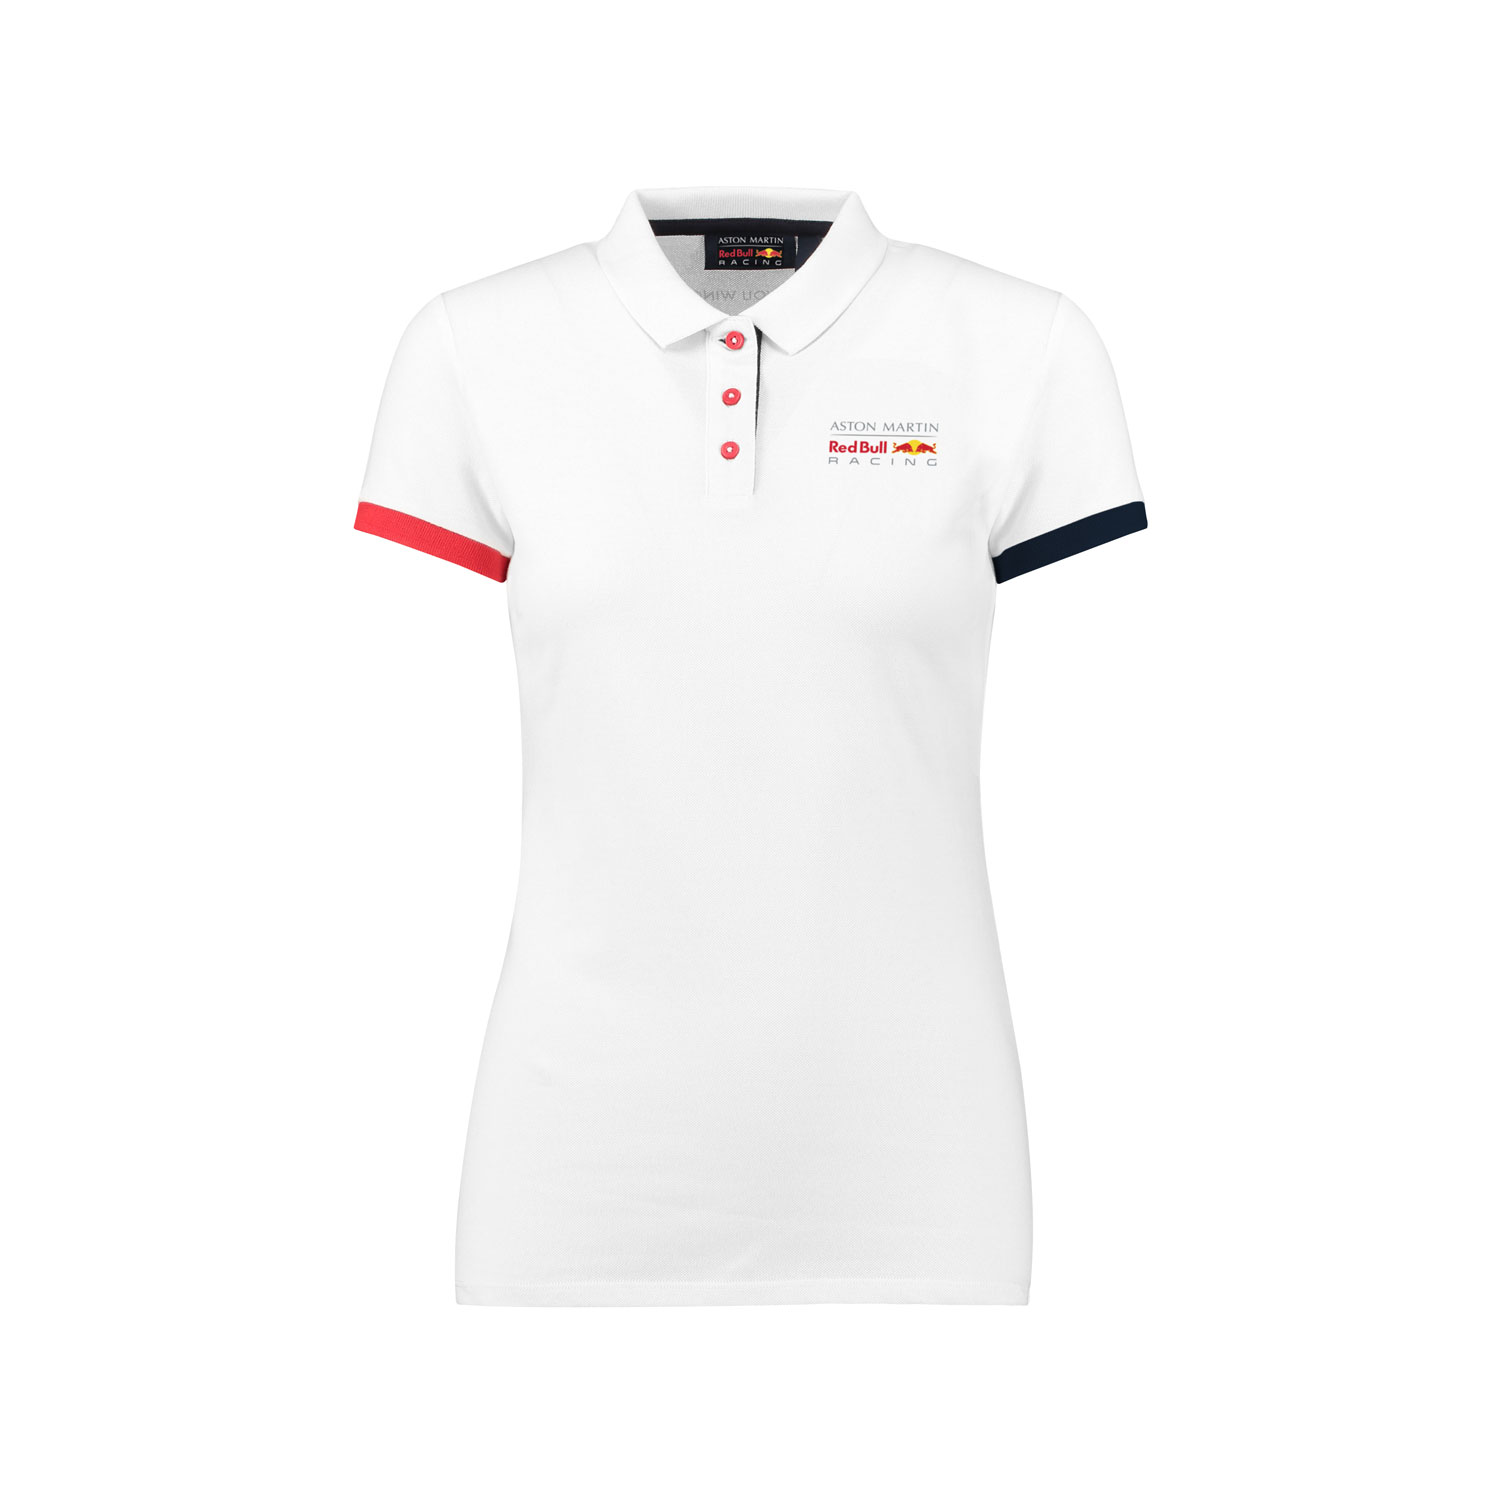 a300d7c0 Details about Red Bull Racing F1 Ladies Classic Polo Shirt White size L